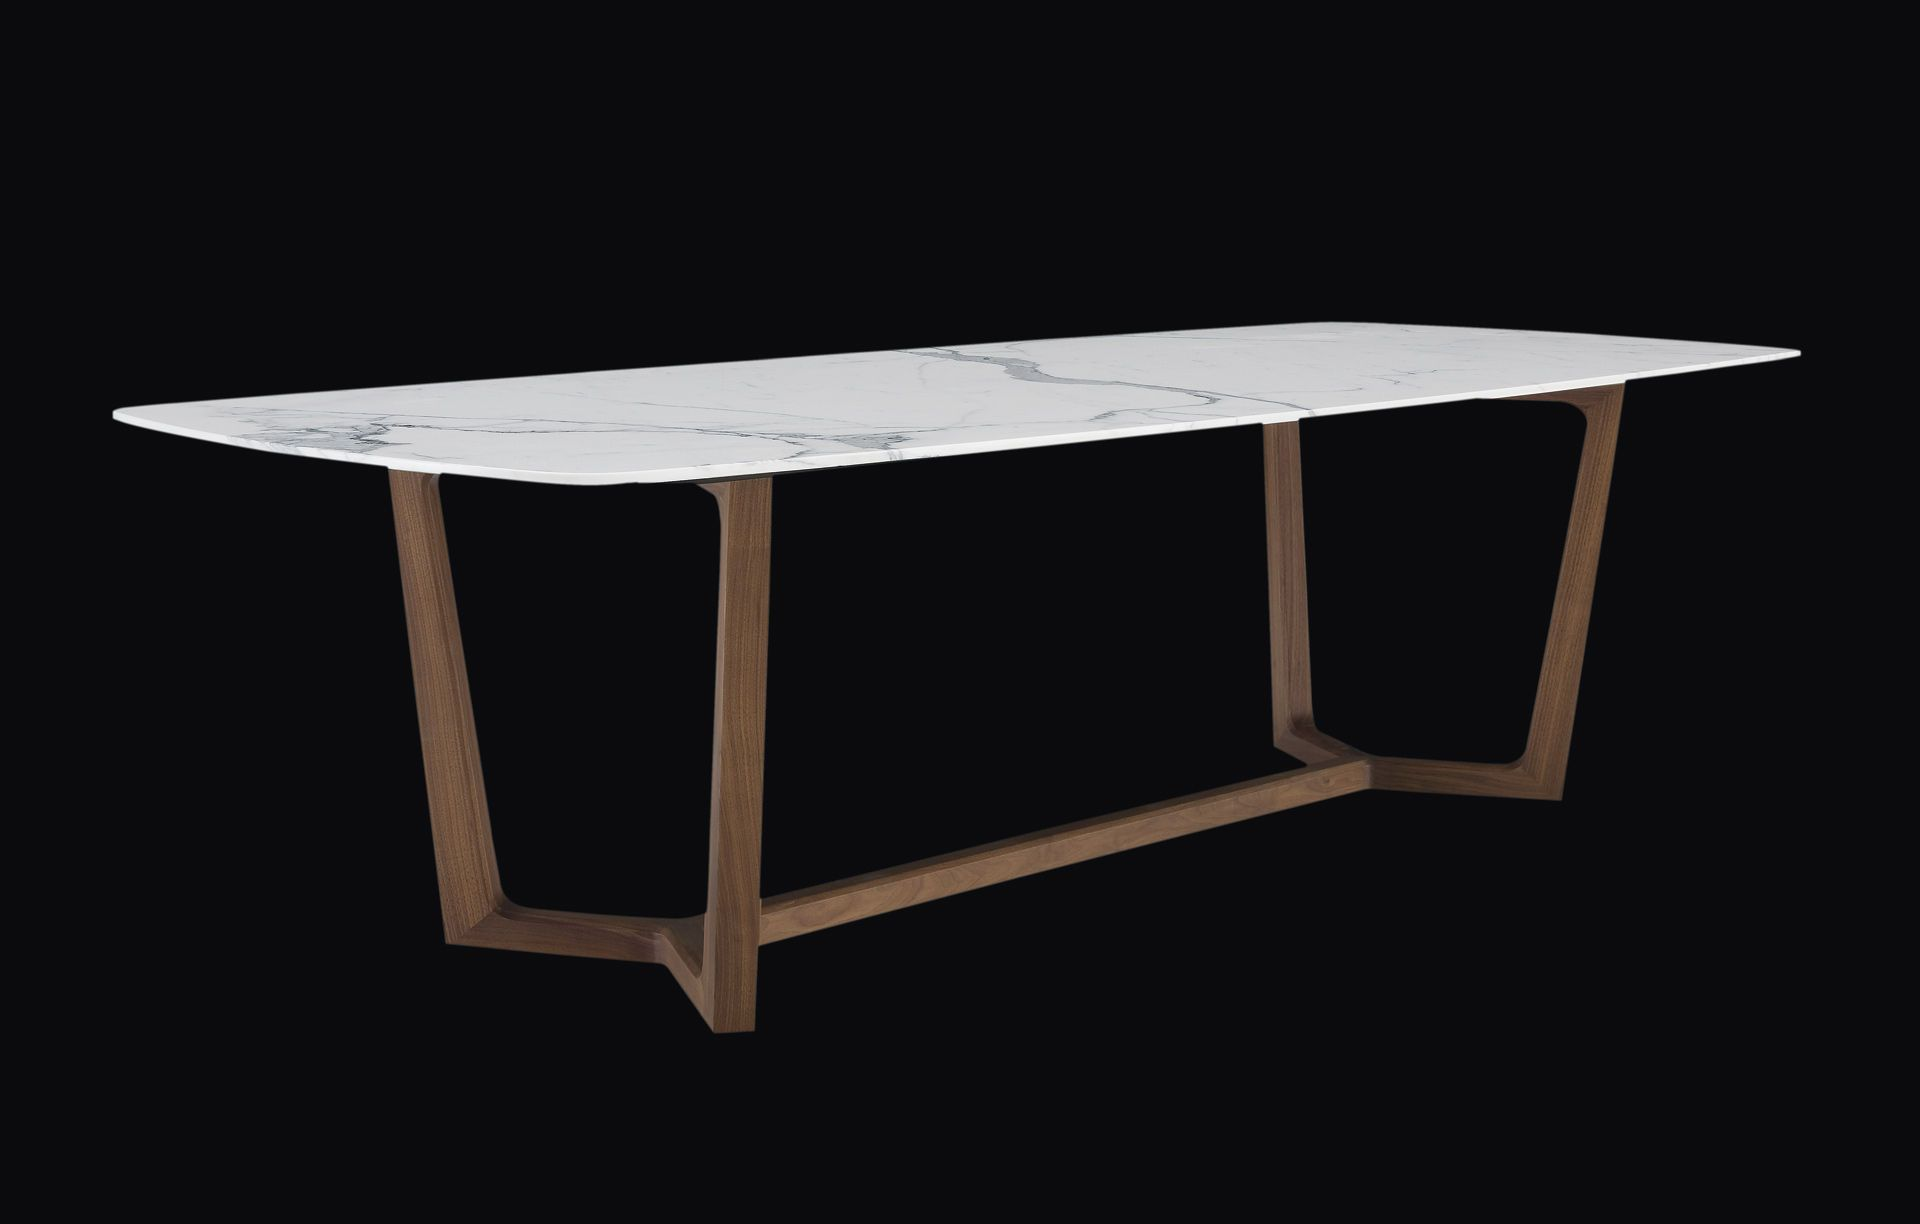 cd0d021dd669f37e3172b58cd855020e Top Result 50 Unique Expandable Coffee Table